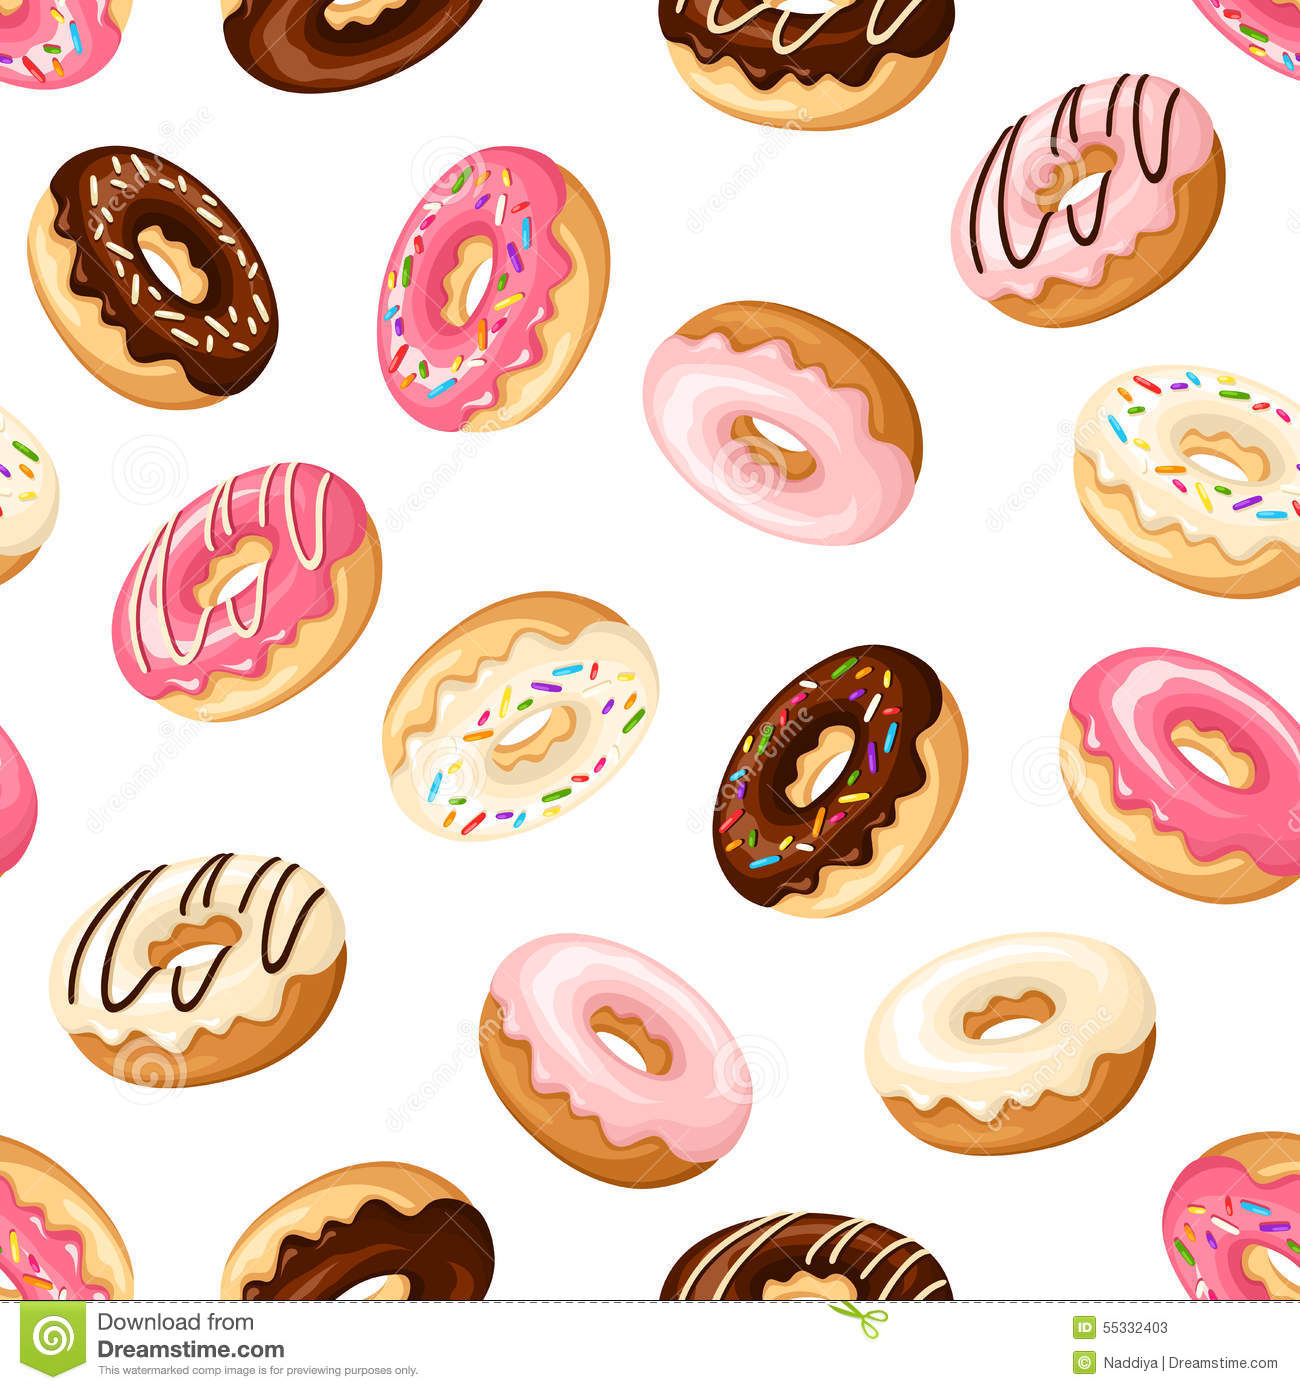 Super Cute Girly Wallpaper Seamless Background With Donuts Vector Illustration